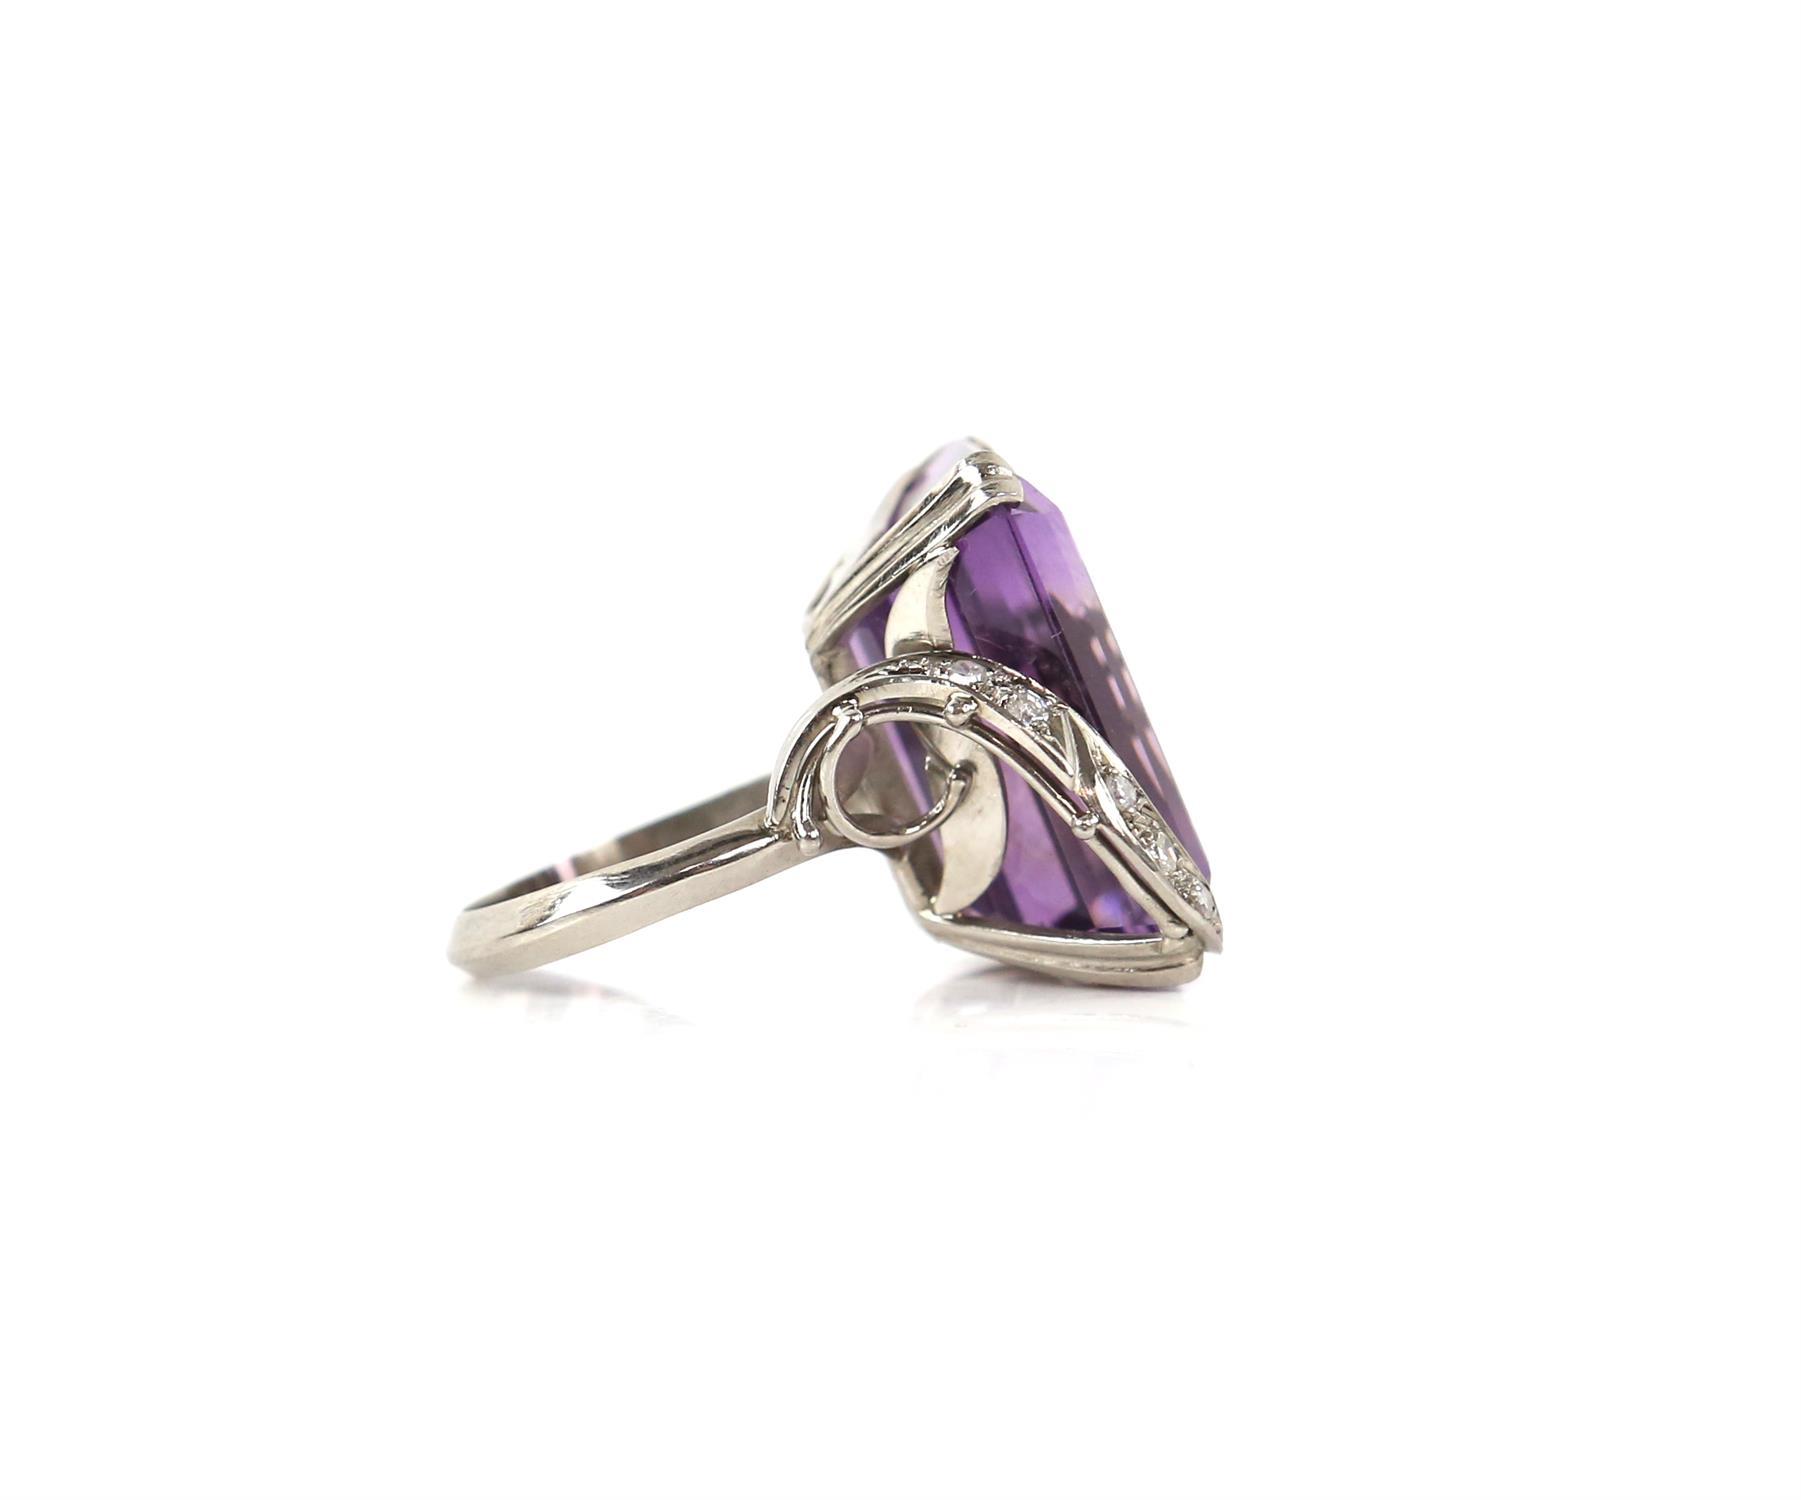 Amethyst and diamond cocktail ring, central rectangular cut amethyst, estimate weight 22.78 carats, - Image 5 of 7